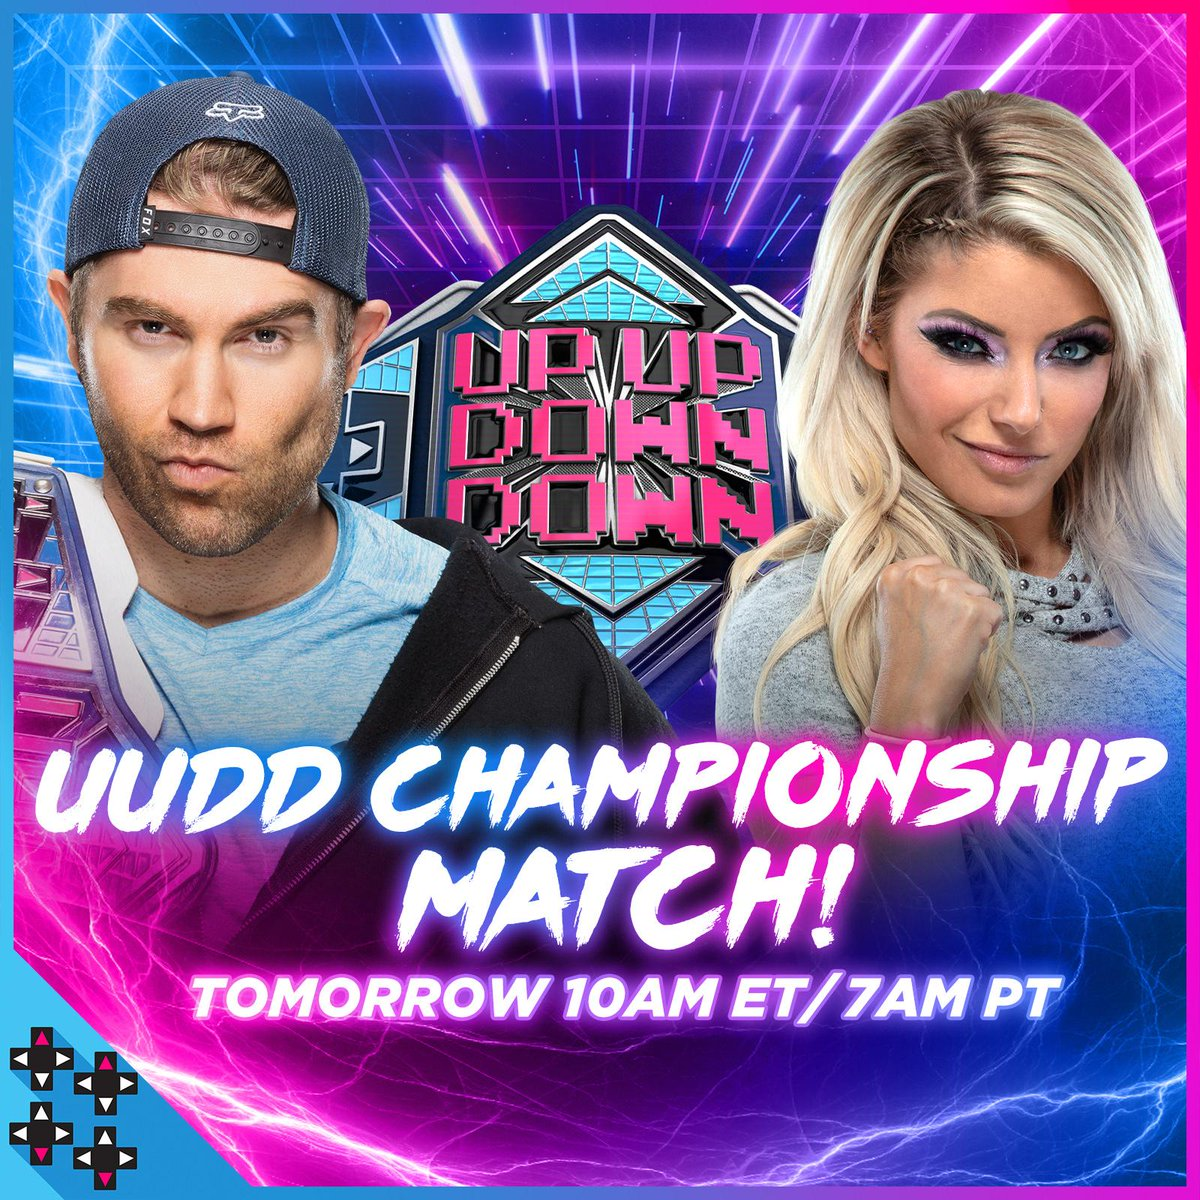 You demanded a rematch and now it's on! @MmmGorgeous puts the #UUDDTitle on the line against @AlexaBliss_WWE at #UUDDRumble!  #UUDD